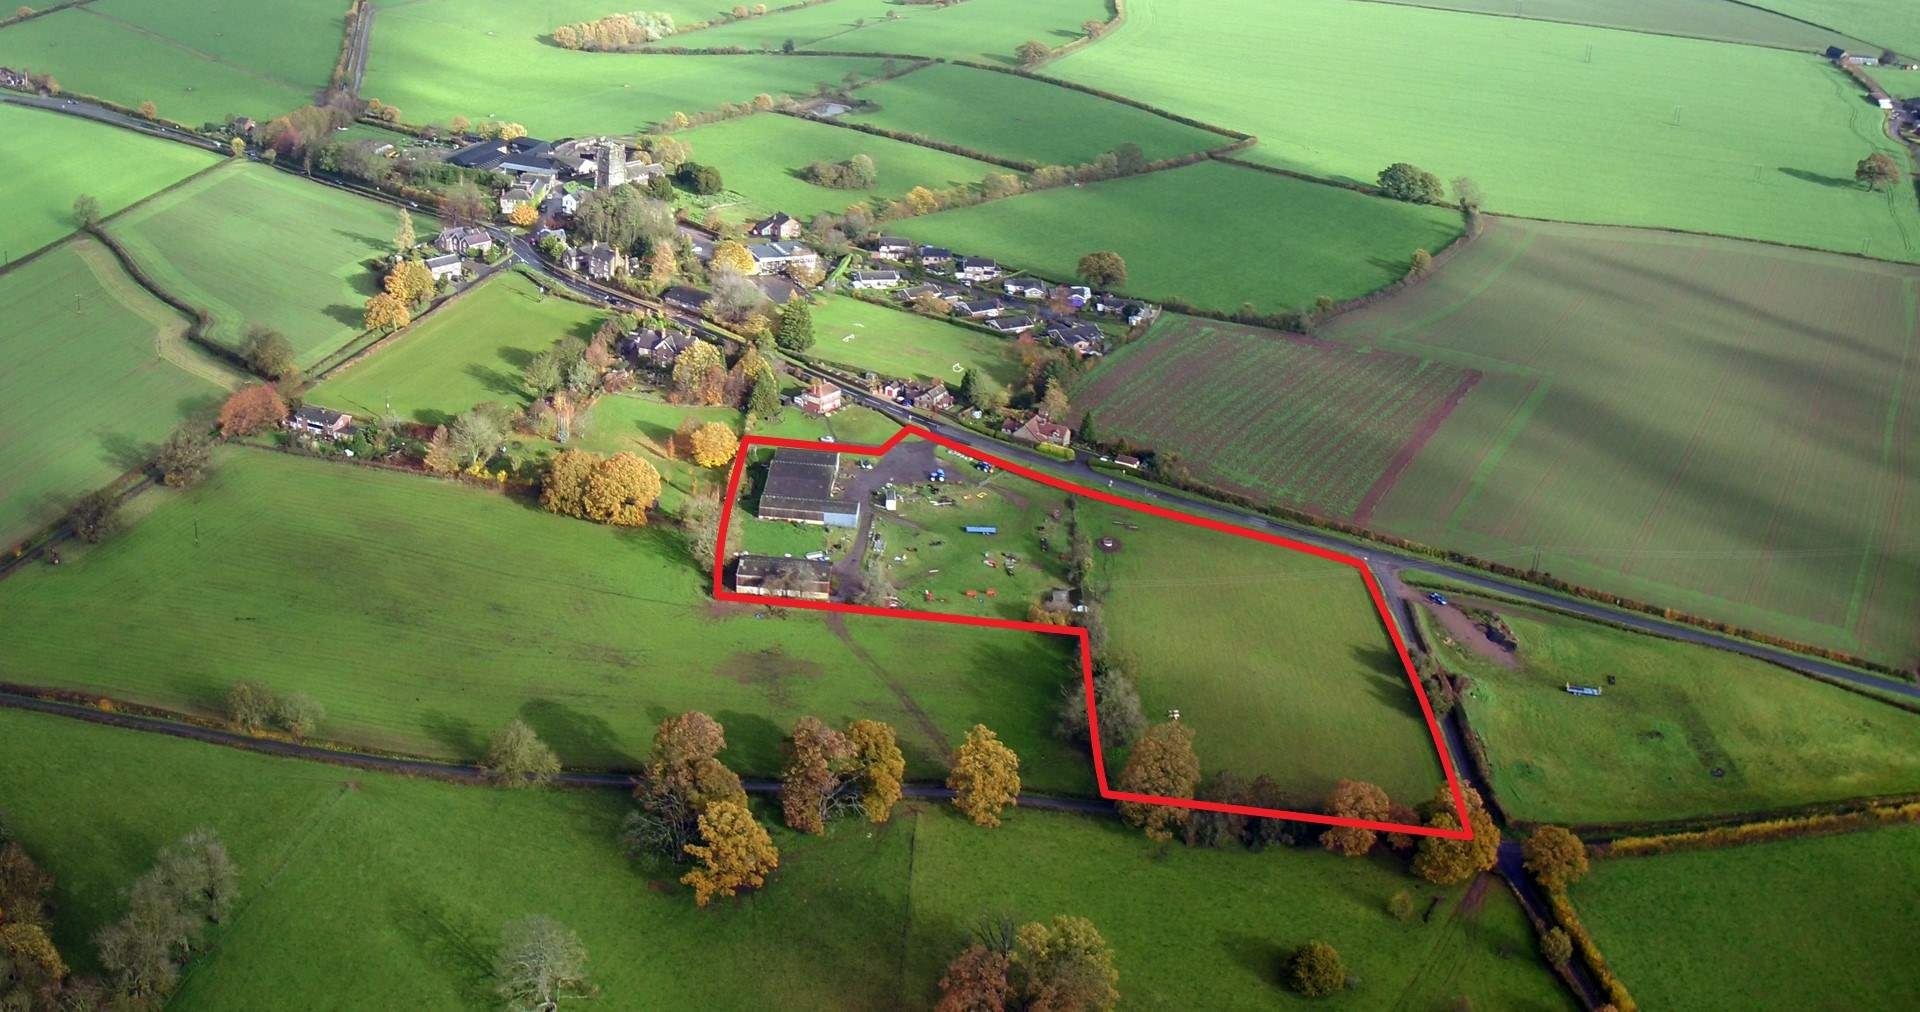 Freeman Homes conduct successful public consultation at St Weonards, Herefordshire